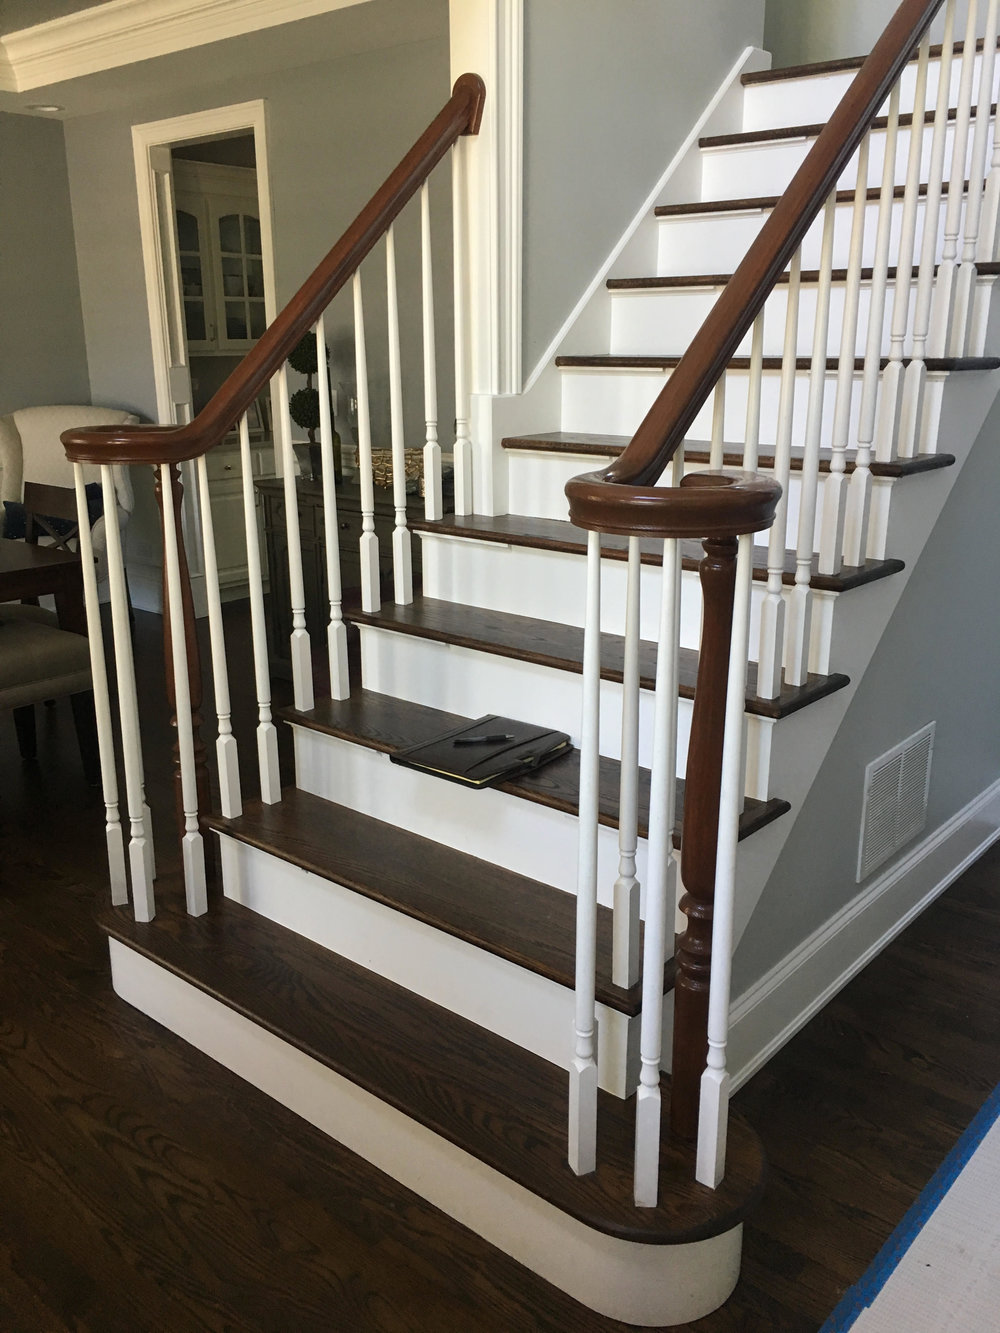 Foyer Staircase Remodeling Before Photo by Southampton Builders LLC. Located in Geneva IL.